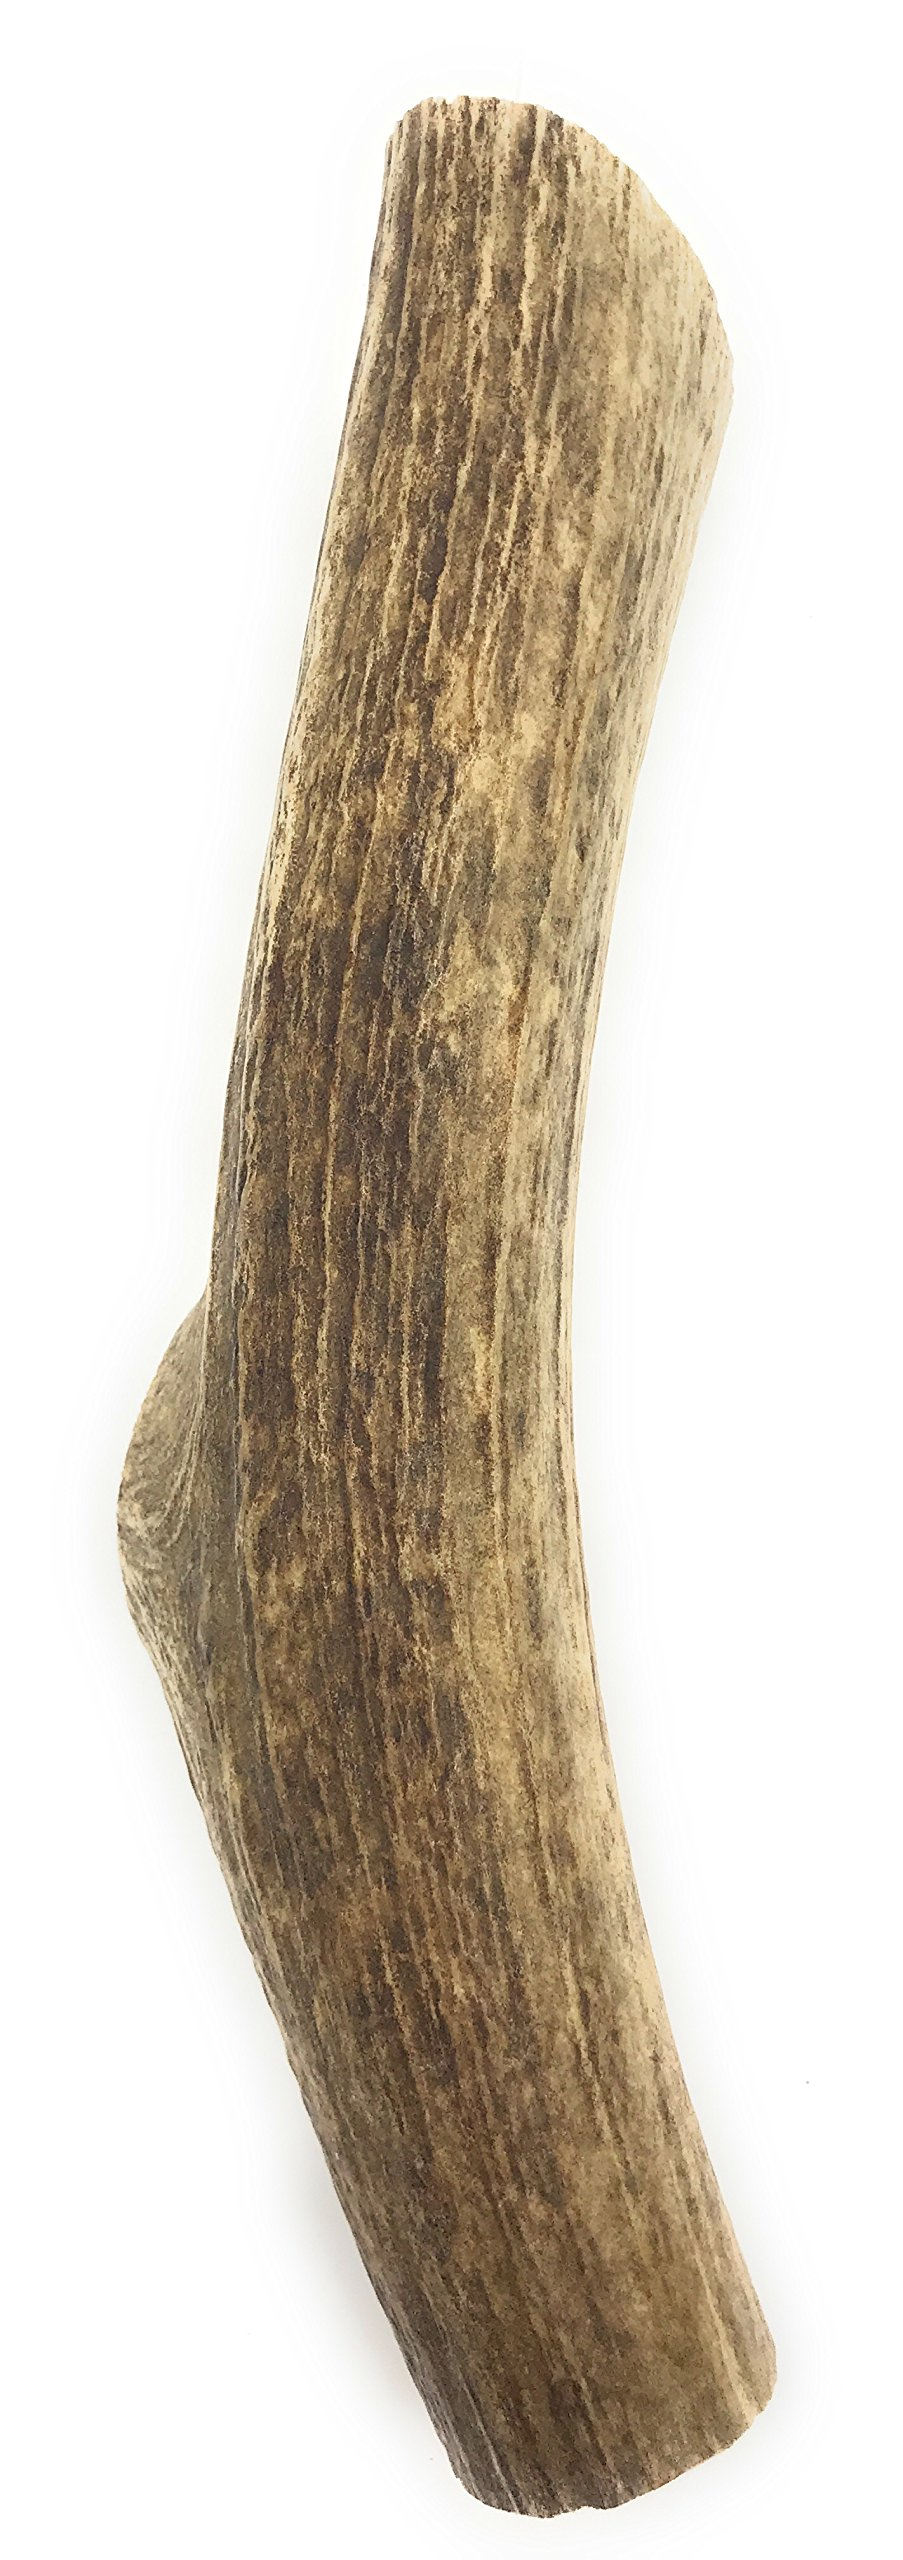 Heartland Antlers Elk Antlers for Dogs (Large 7-9) Grade-A, Premium Antler Chews for Dogs. USA Product, Long Lasting Bully Stick (XL 9''-11'')